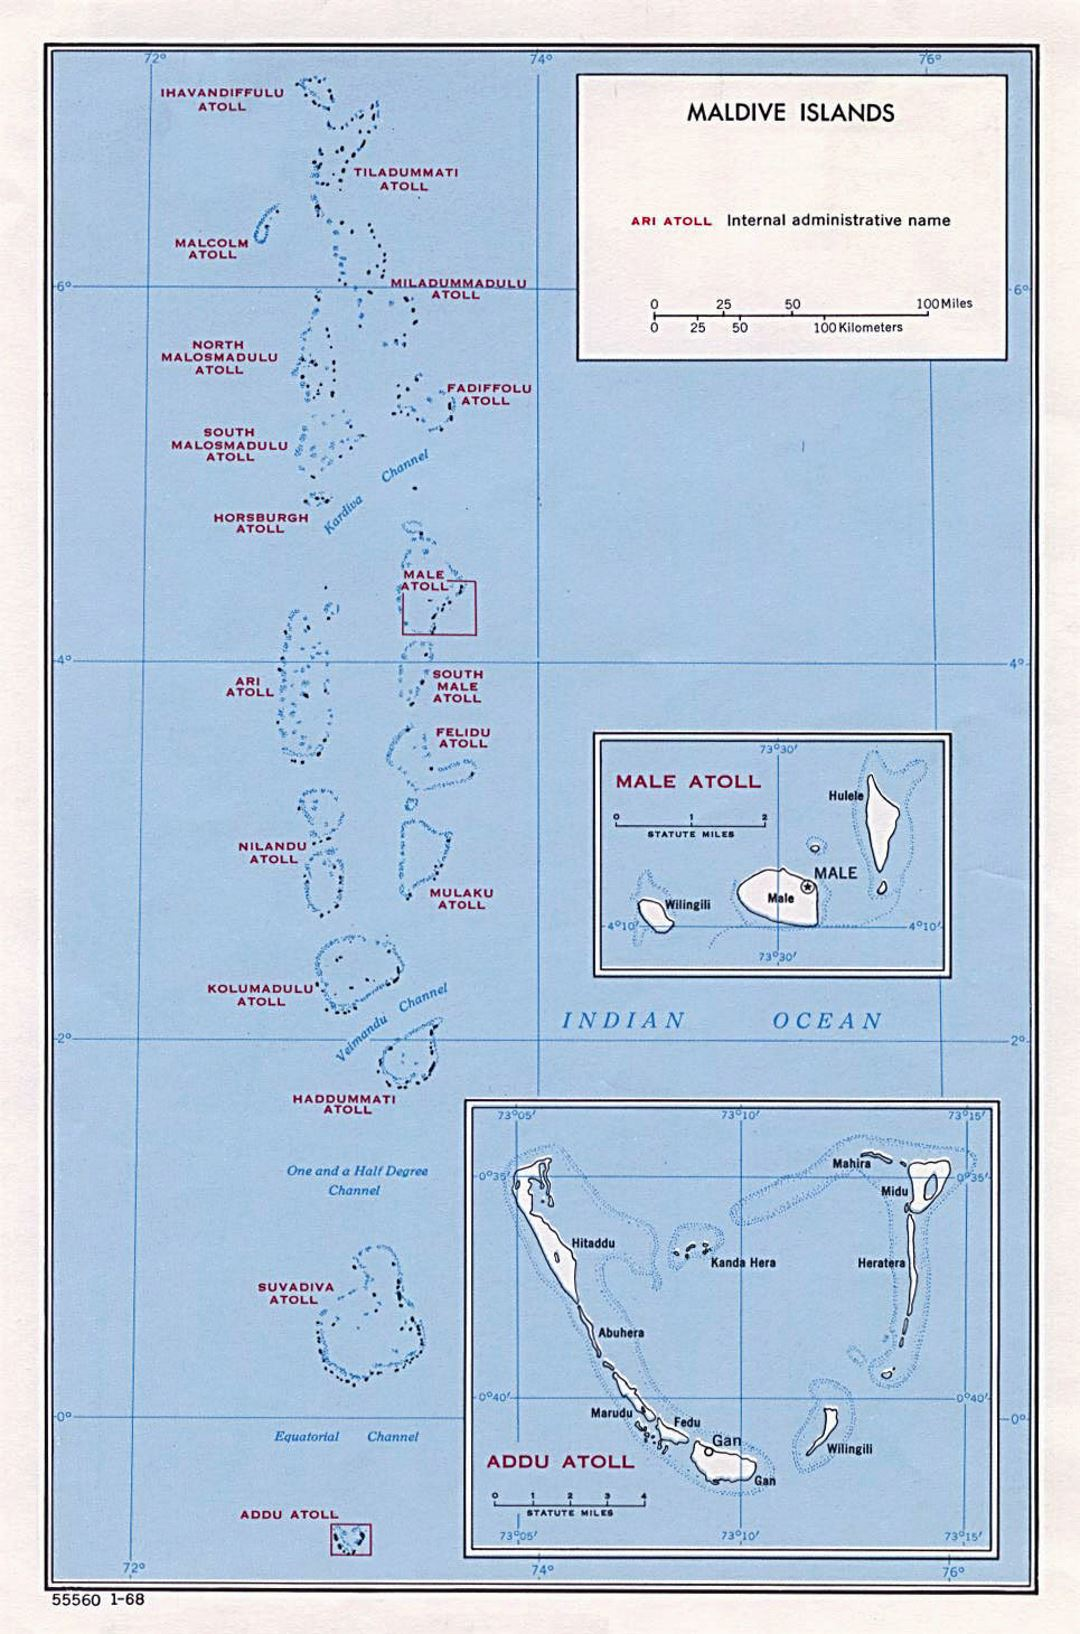 Large administrative map of Maldives - 1968